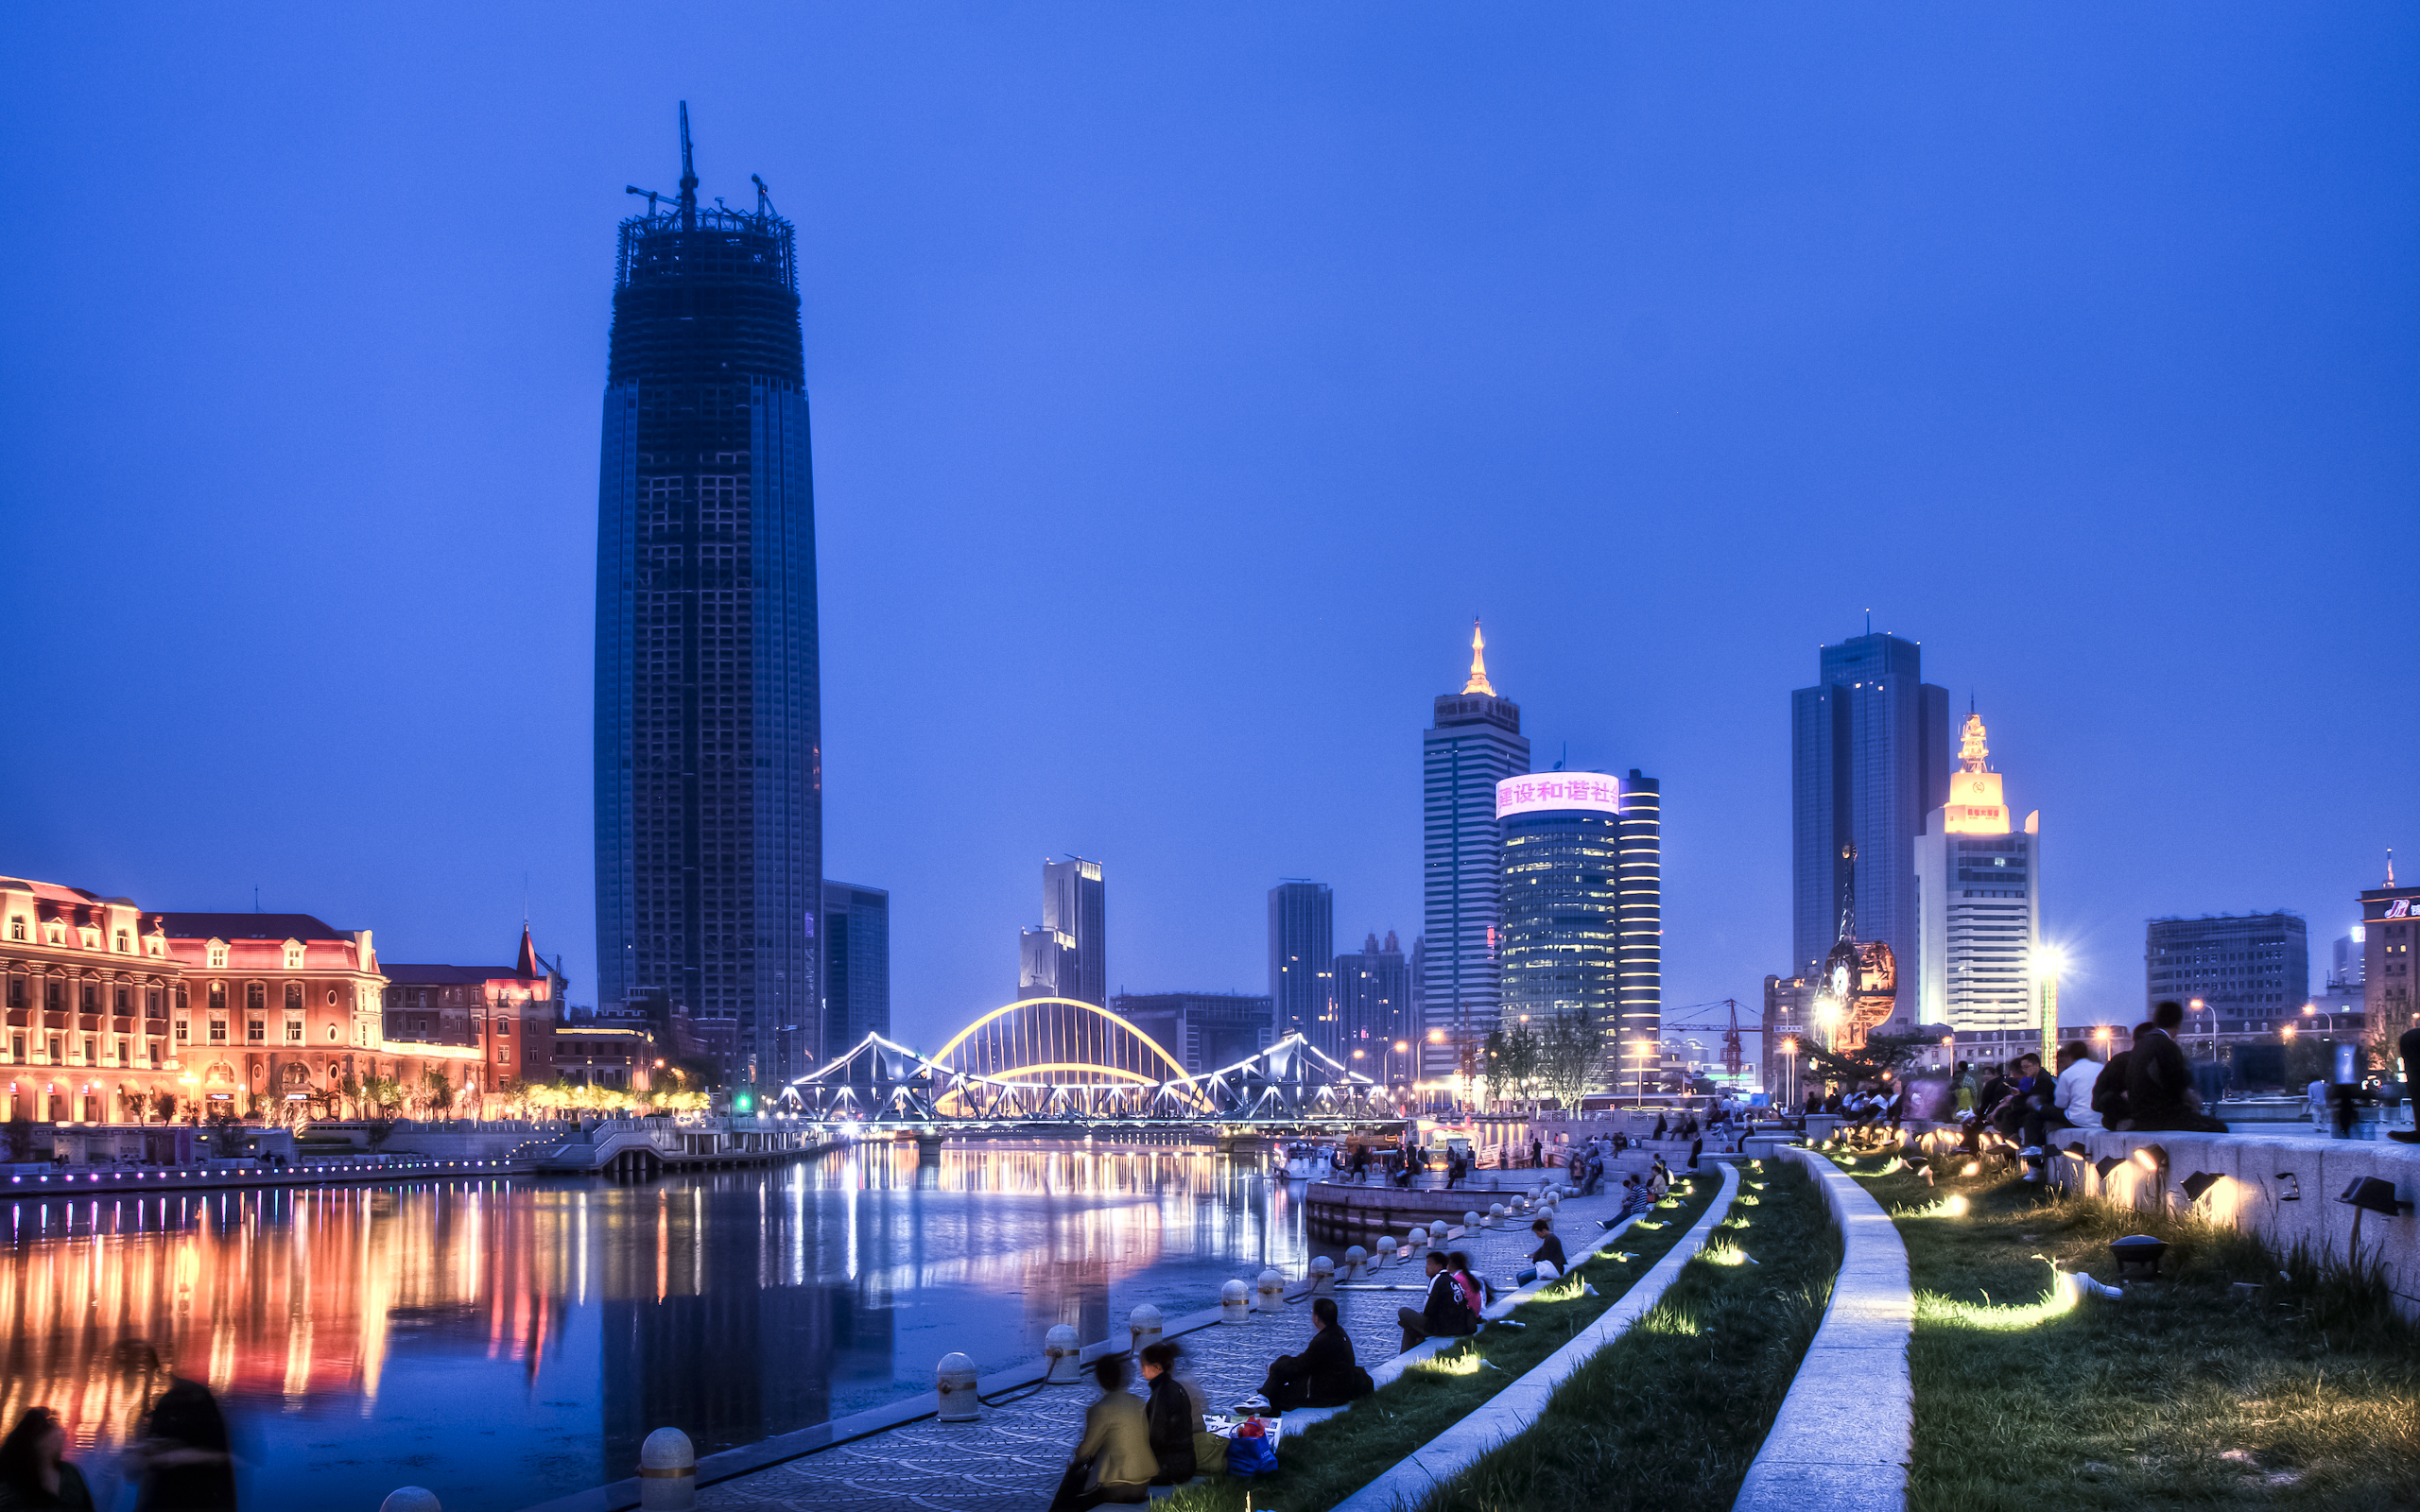 Tianjin from Tianjin Station (Tianjin World Financial Center on the left)